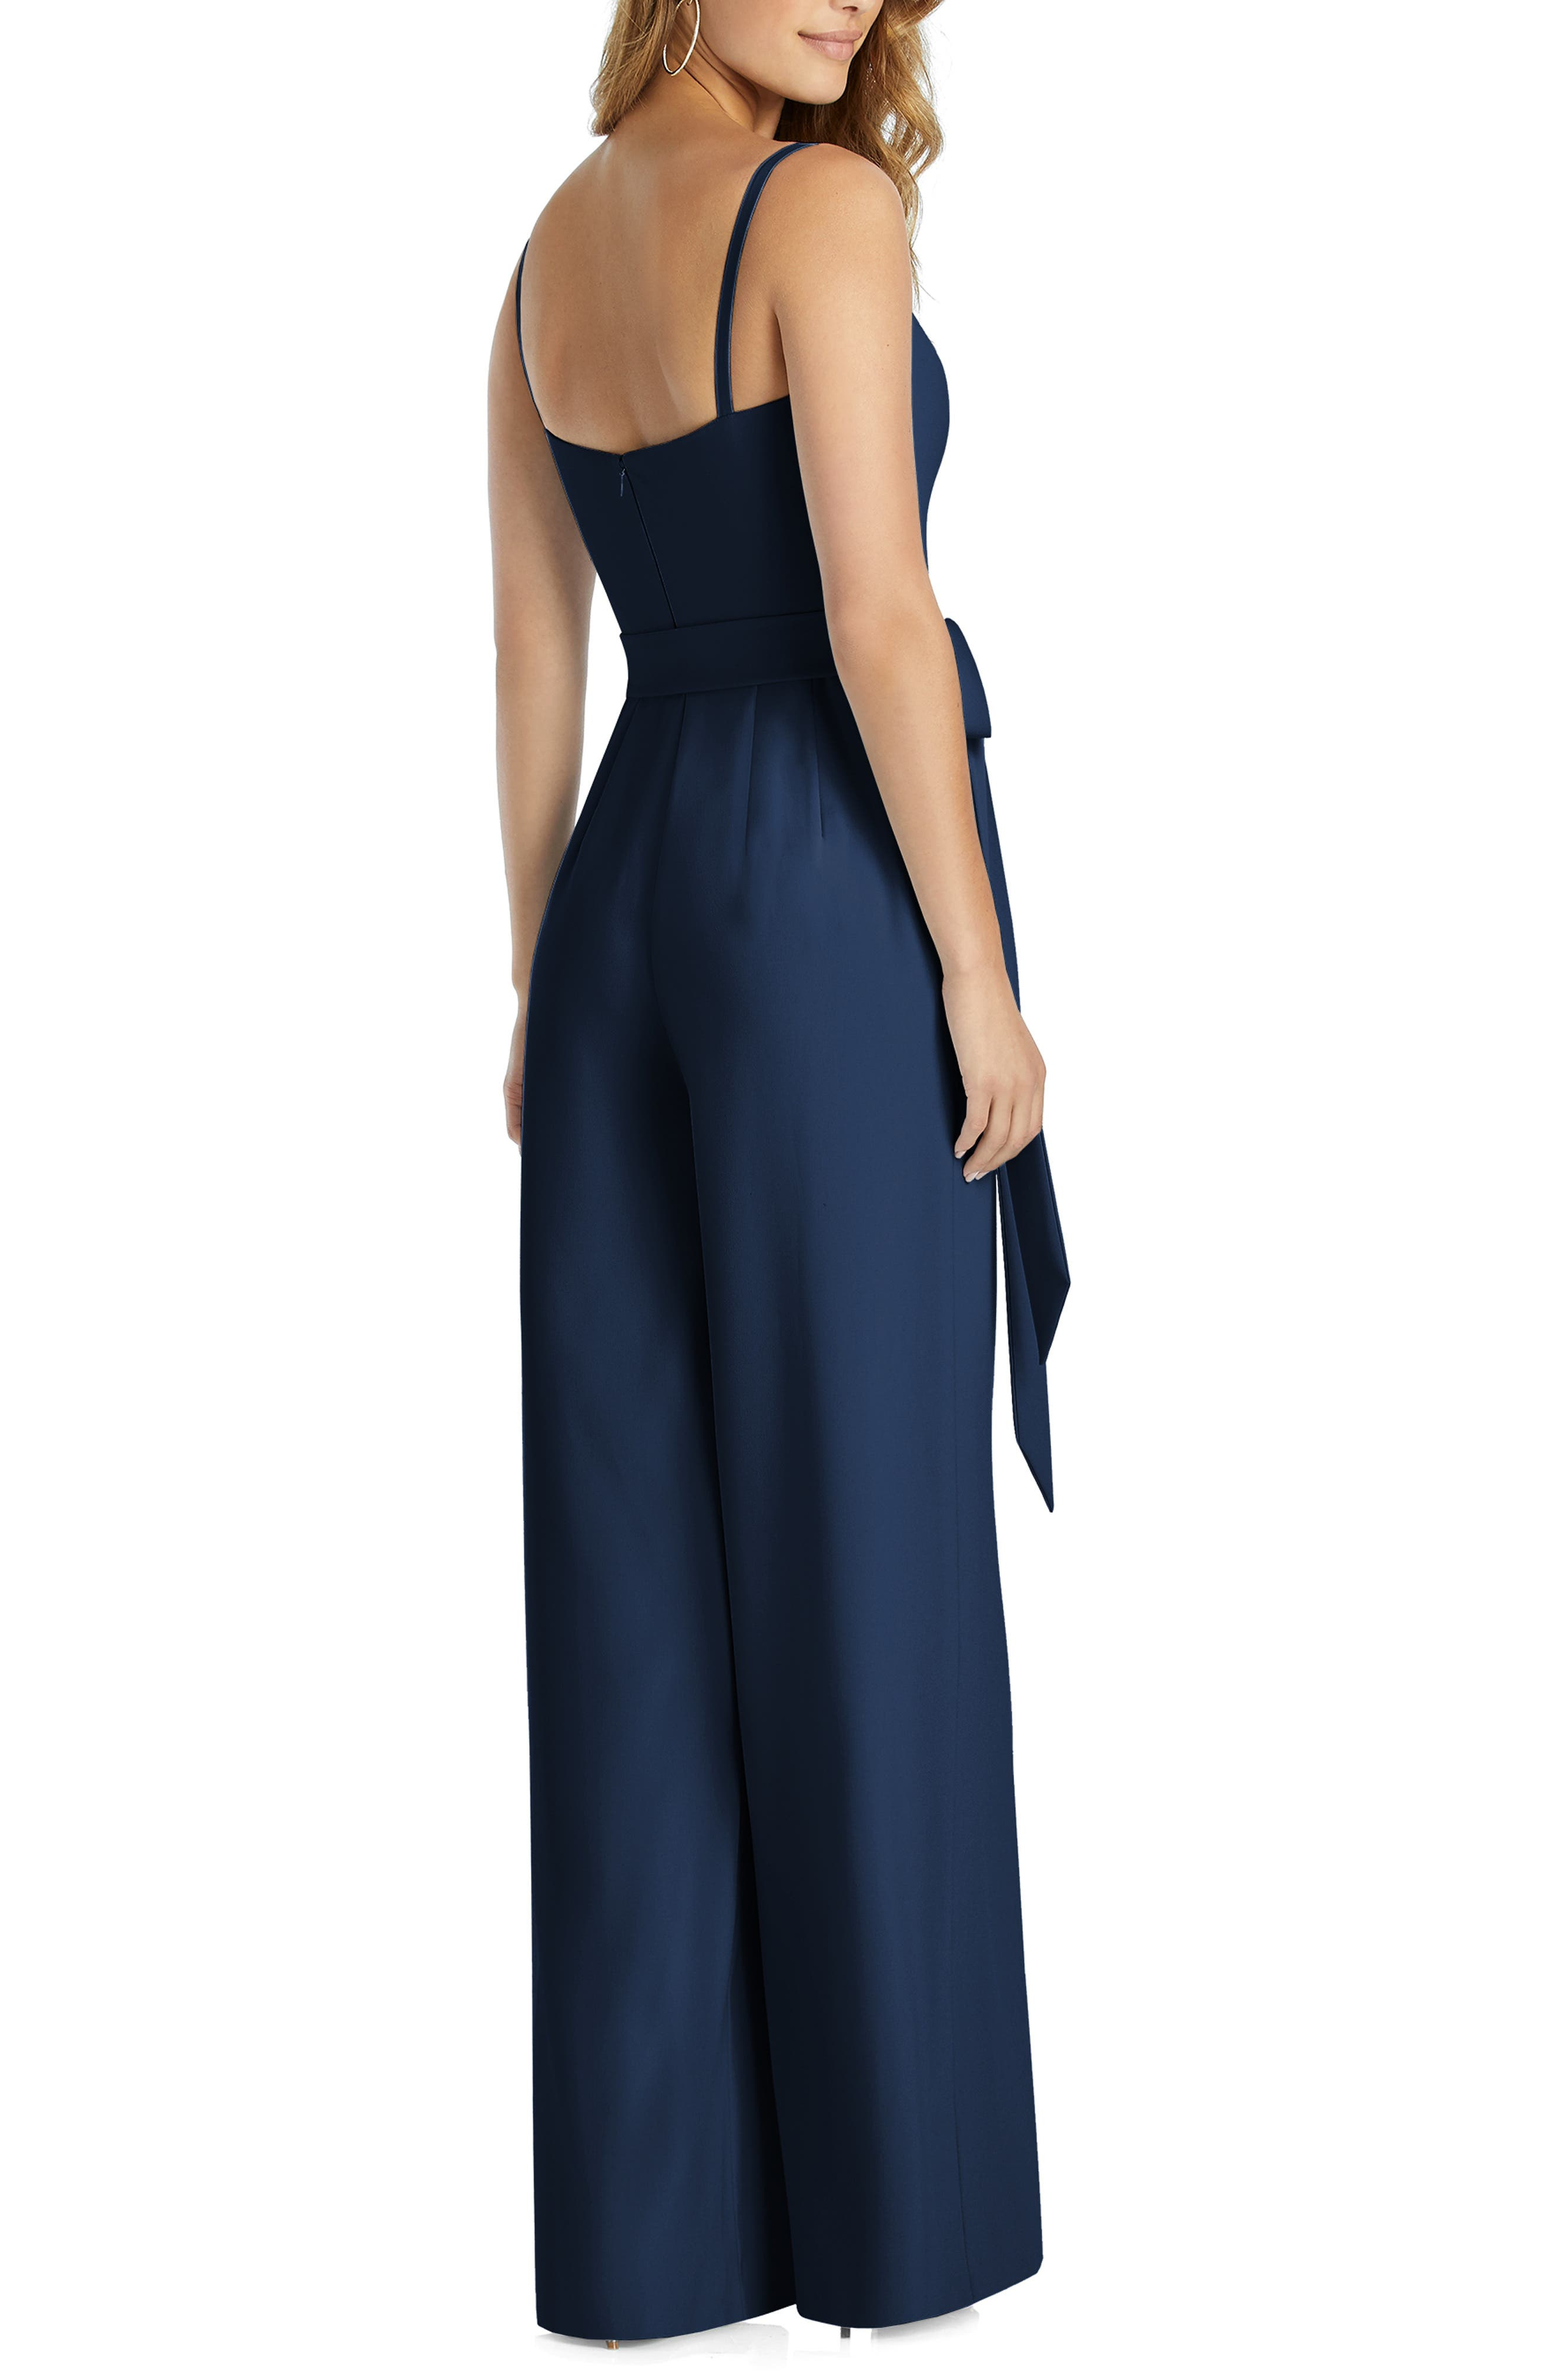 DESSY COLLECTION, Alana Crepe Jumpsuit, Alternate thumbnail 2, color, MIDNIGHT